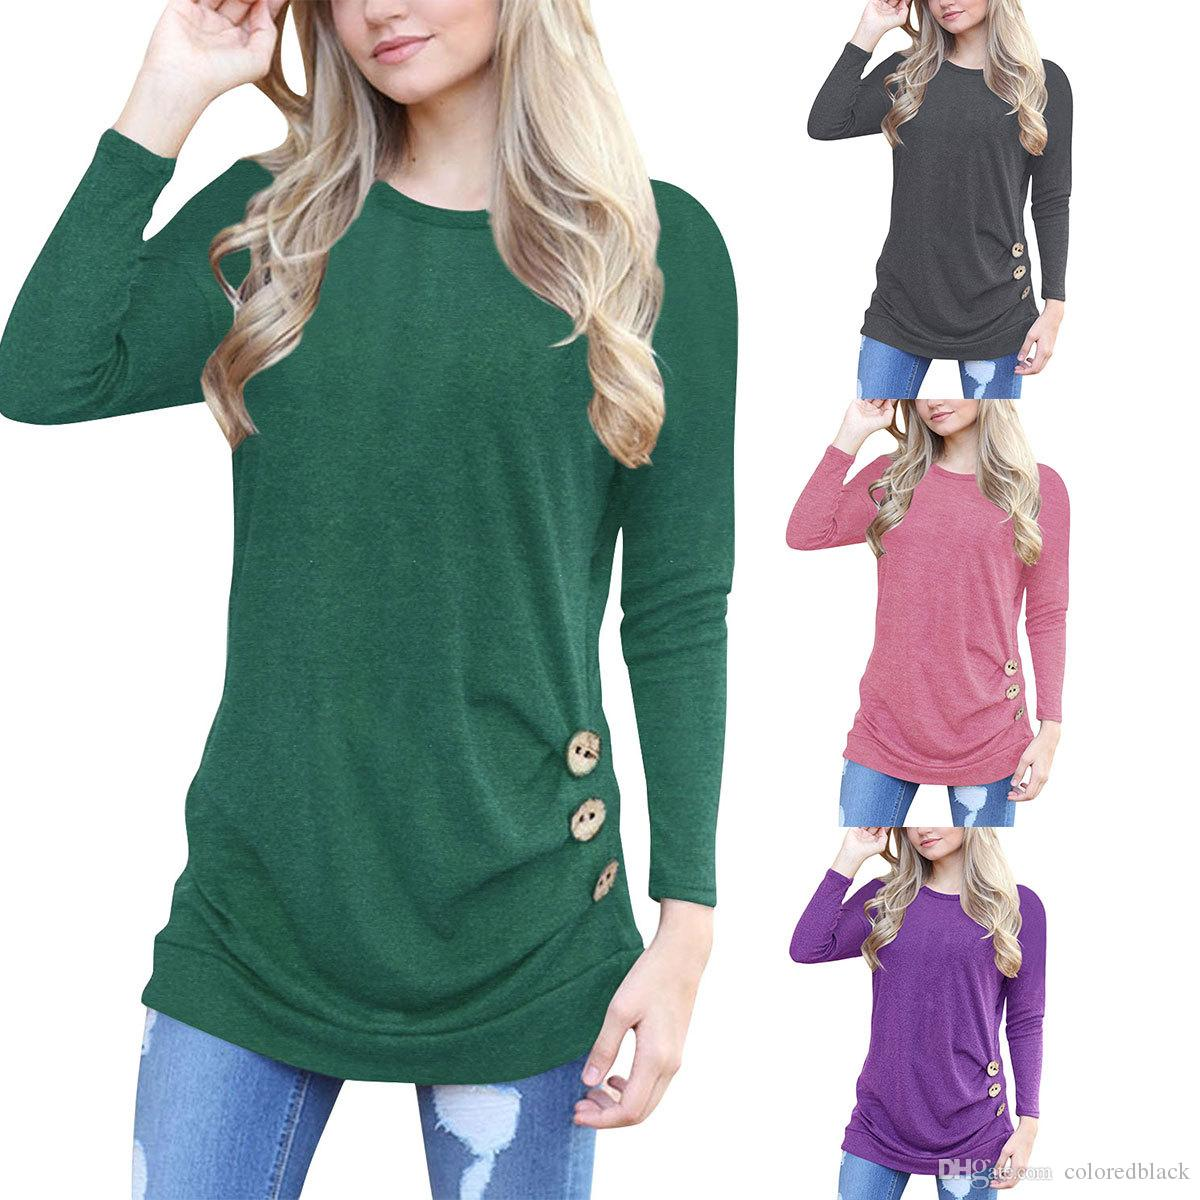 Wholesale Women Faddish T Shirt With Fastener Decoration Round